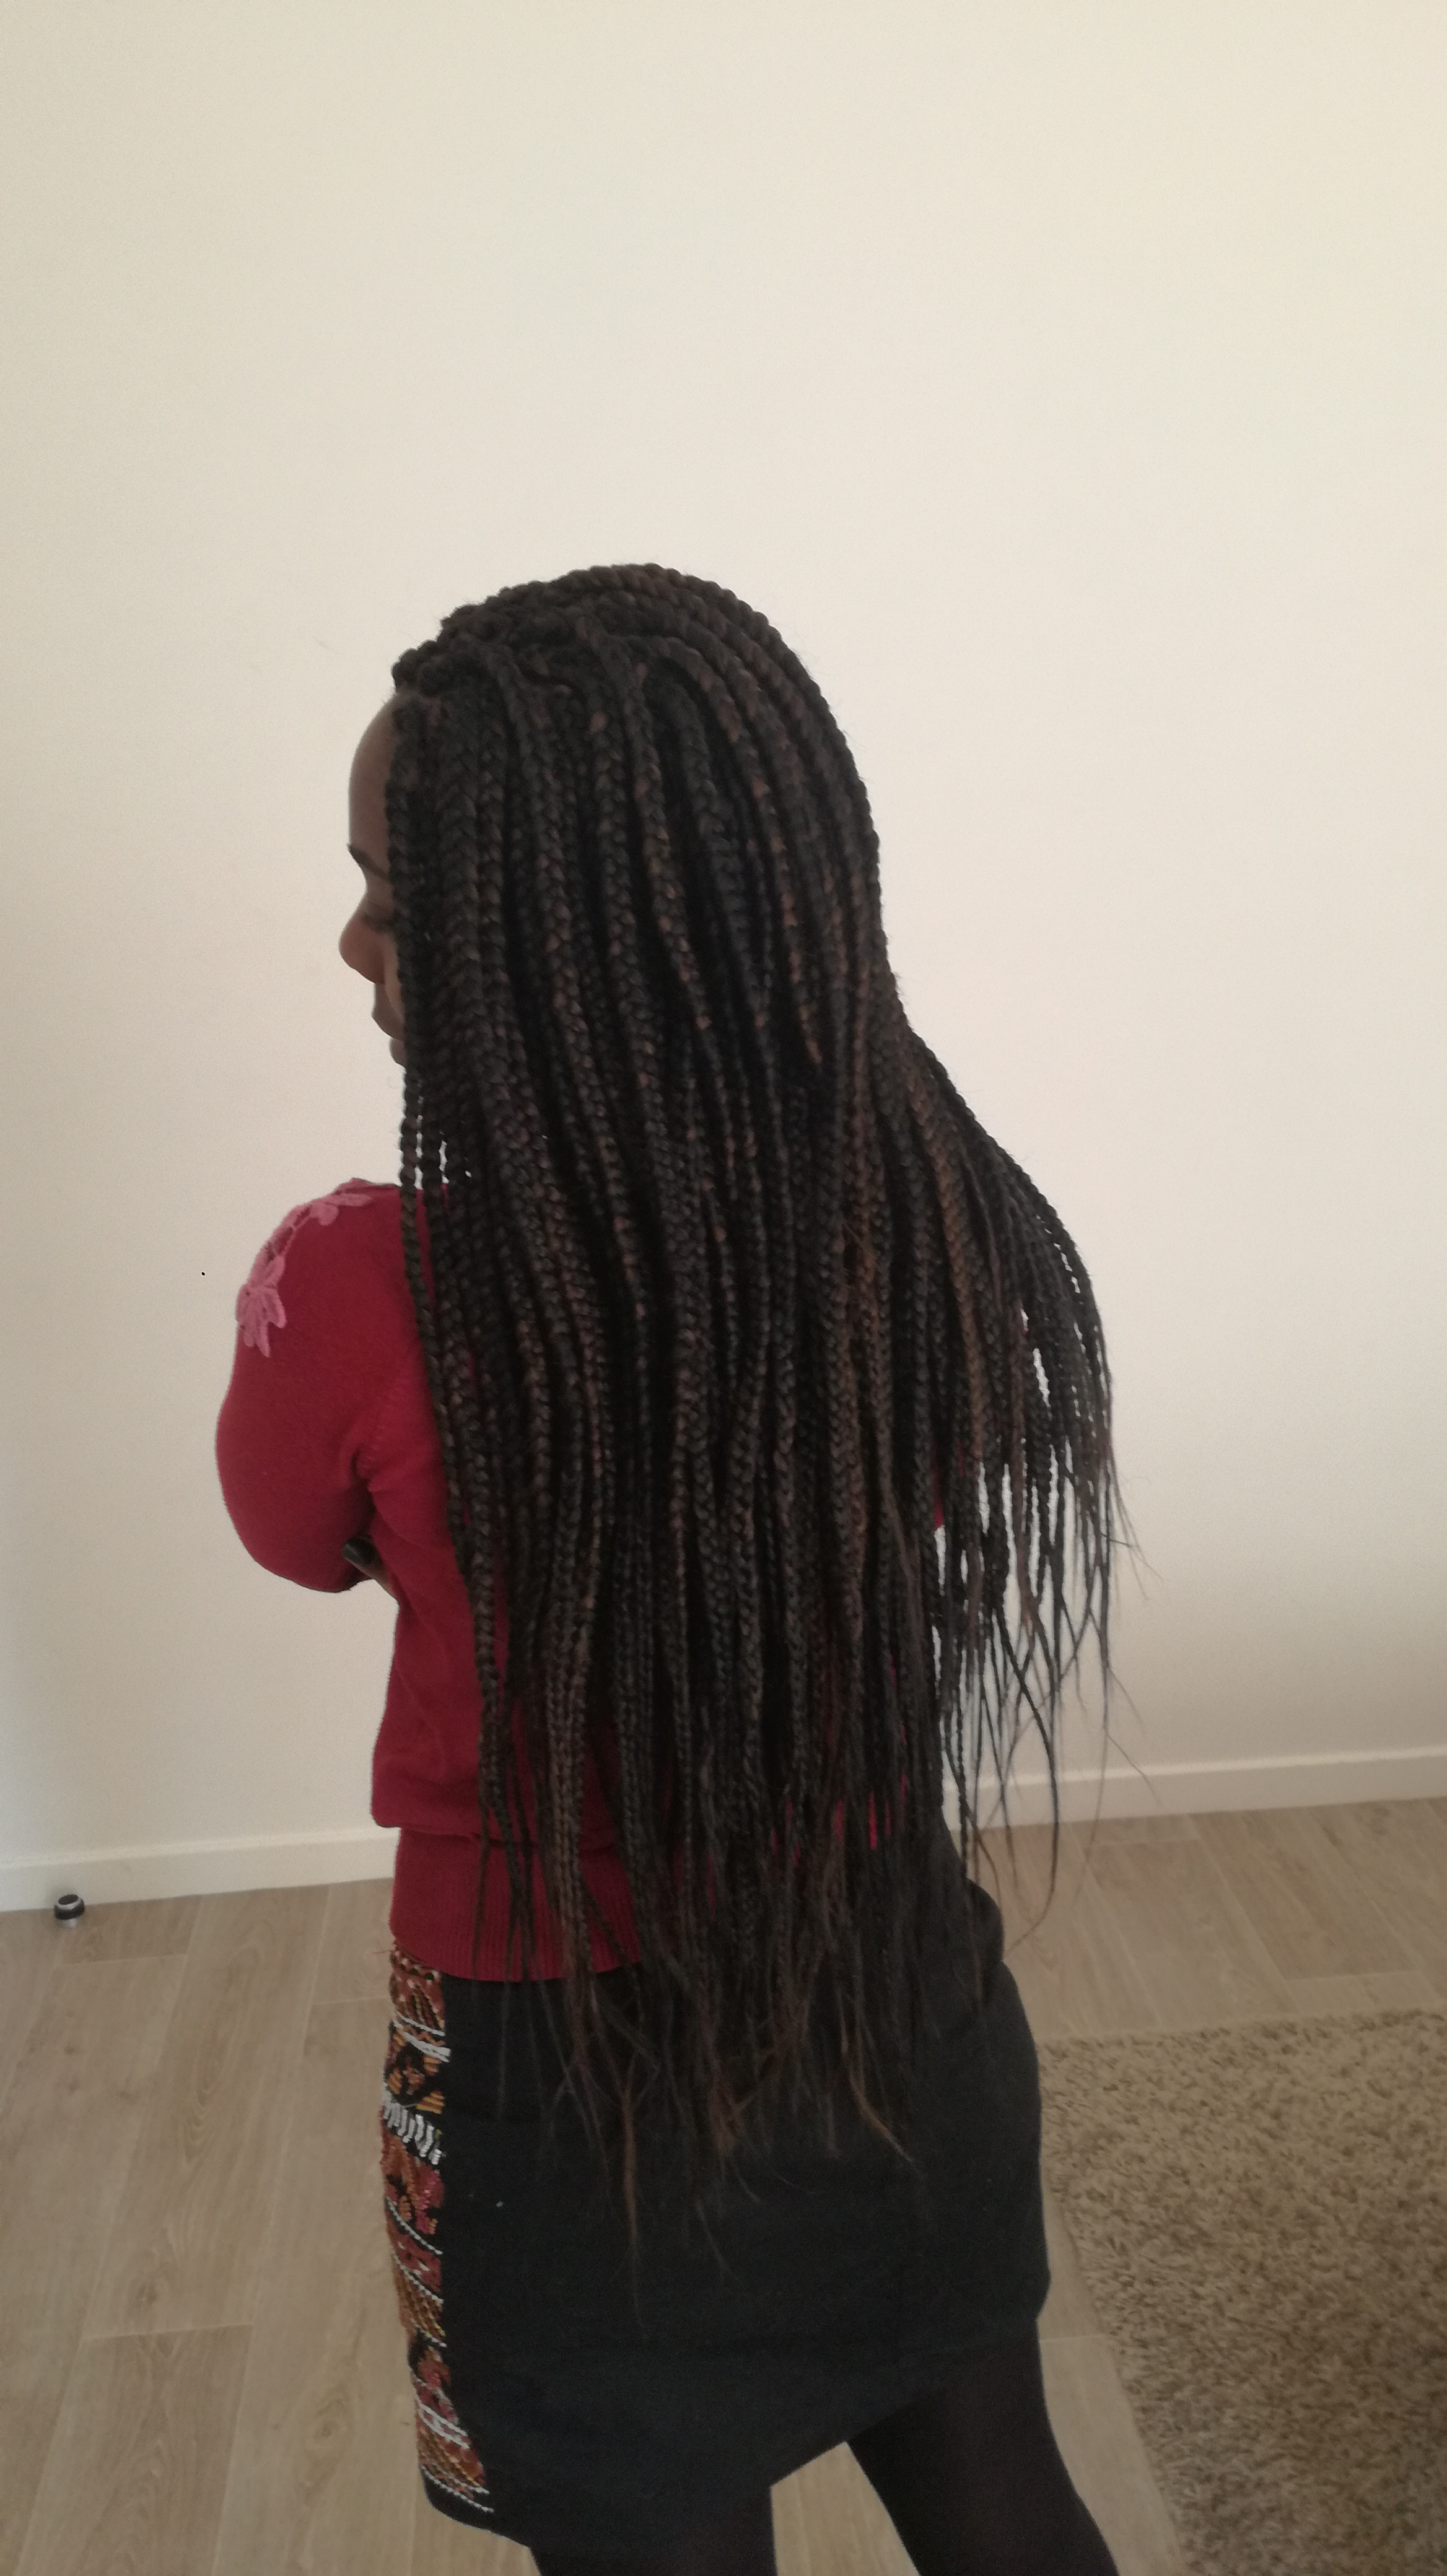 salon de coiffure afro tresse tresses box braids crochet braids vanilles tissages paris 75 77 78 91 92 93 94 95 UOYHZMSB